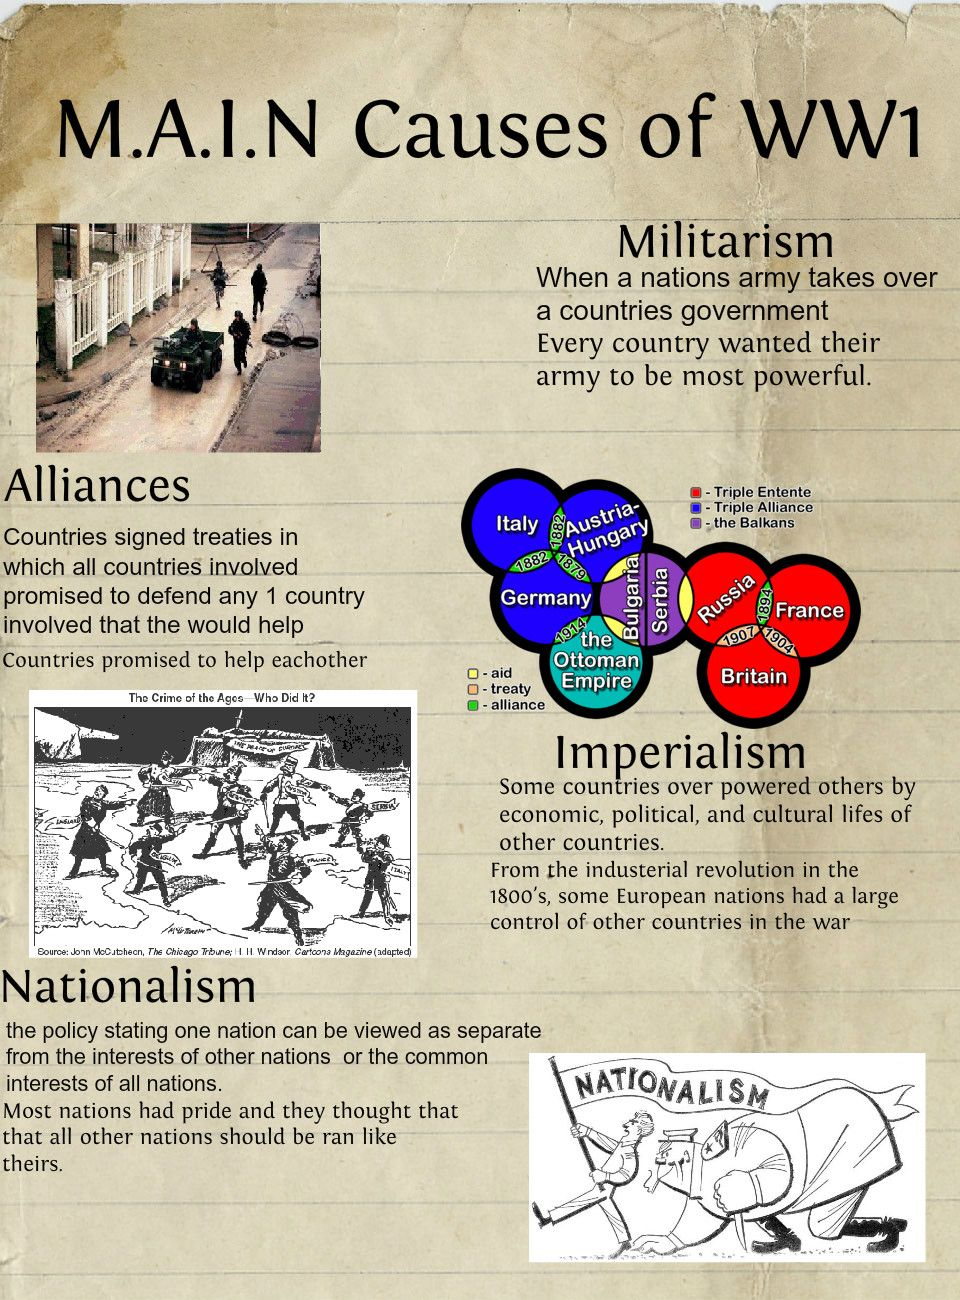 these pictures represent the four main causes of ww1 pinteres these pictures represent the four main causes of ww1 more